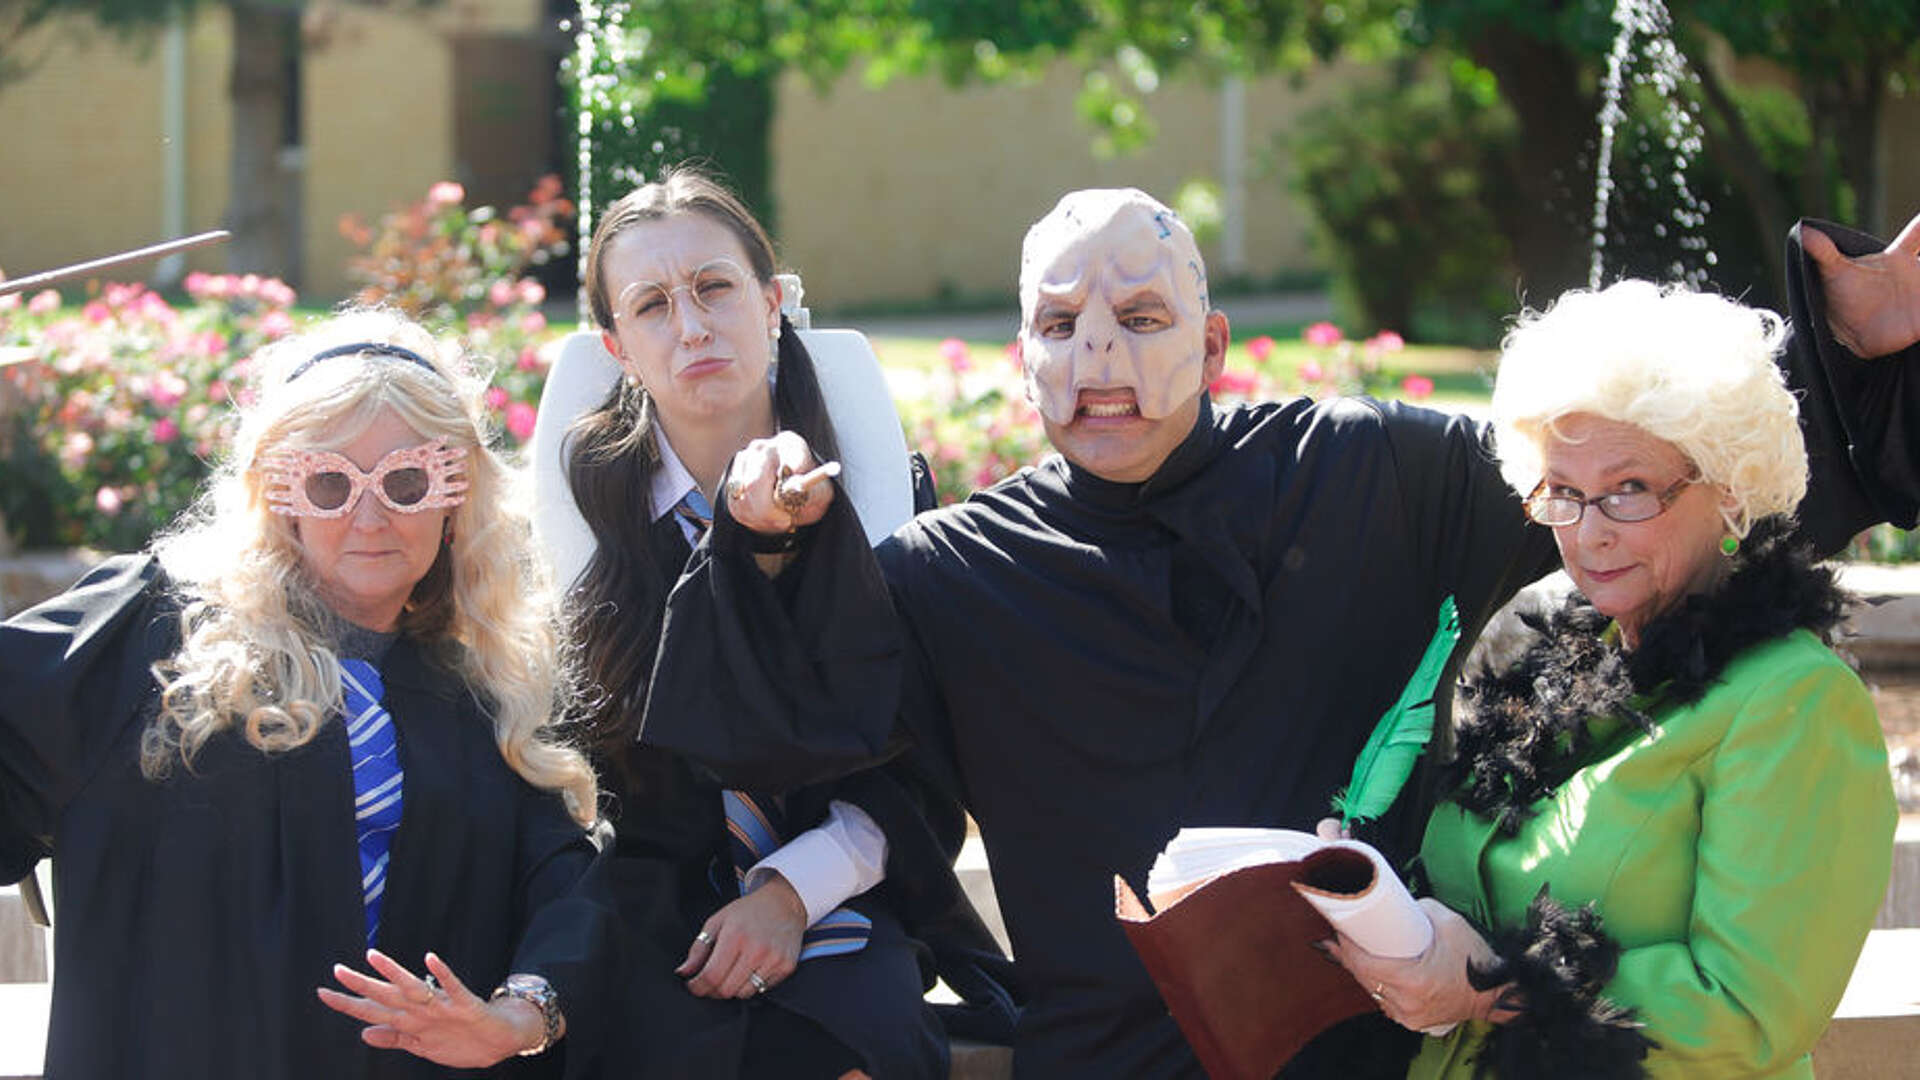 Some LCU faculty and staff in Harry Potter costumes